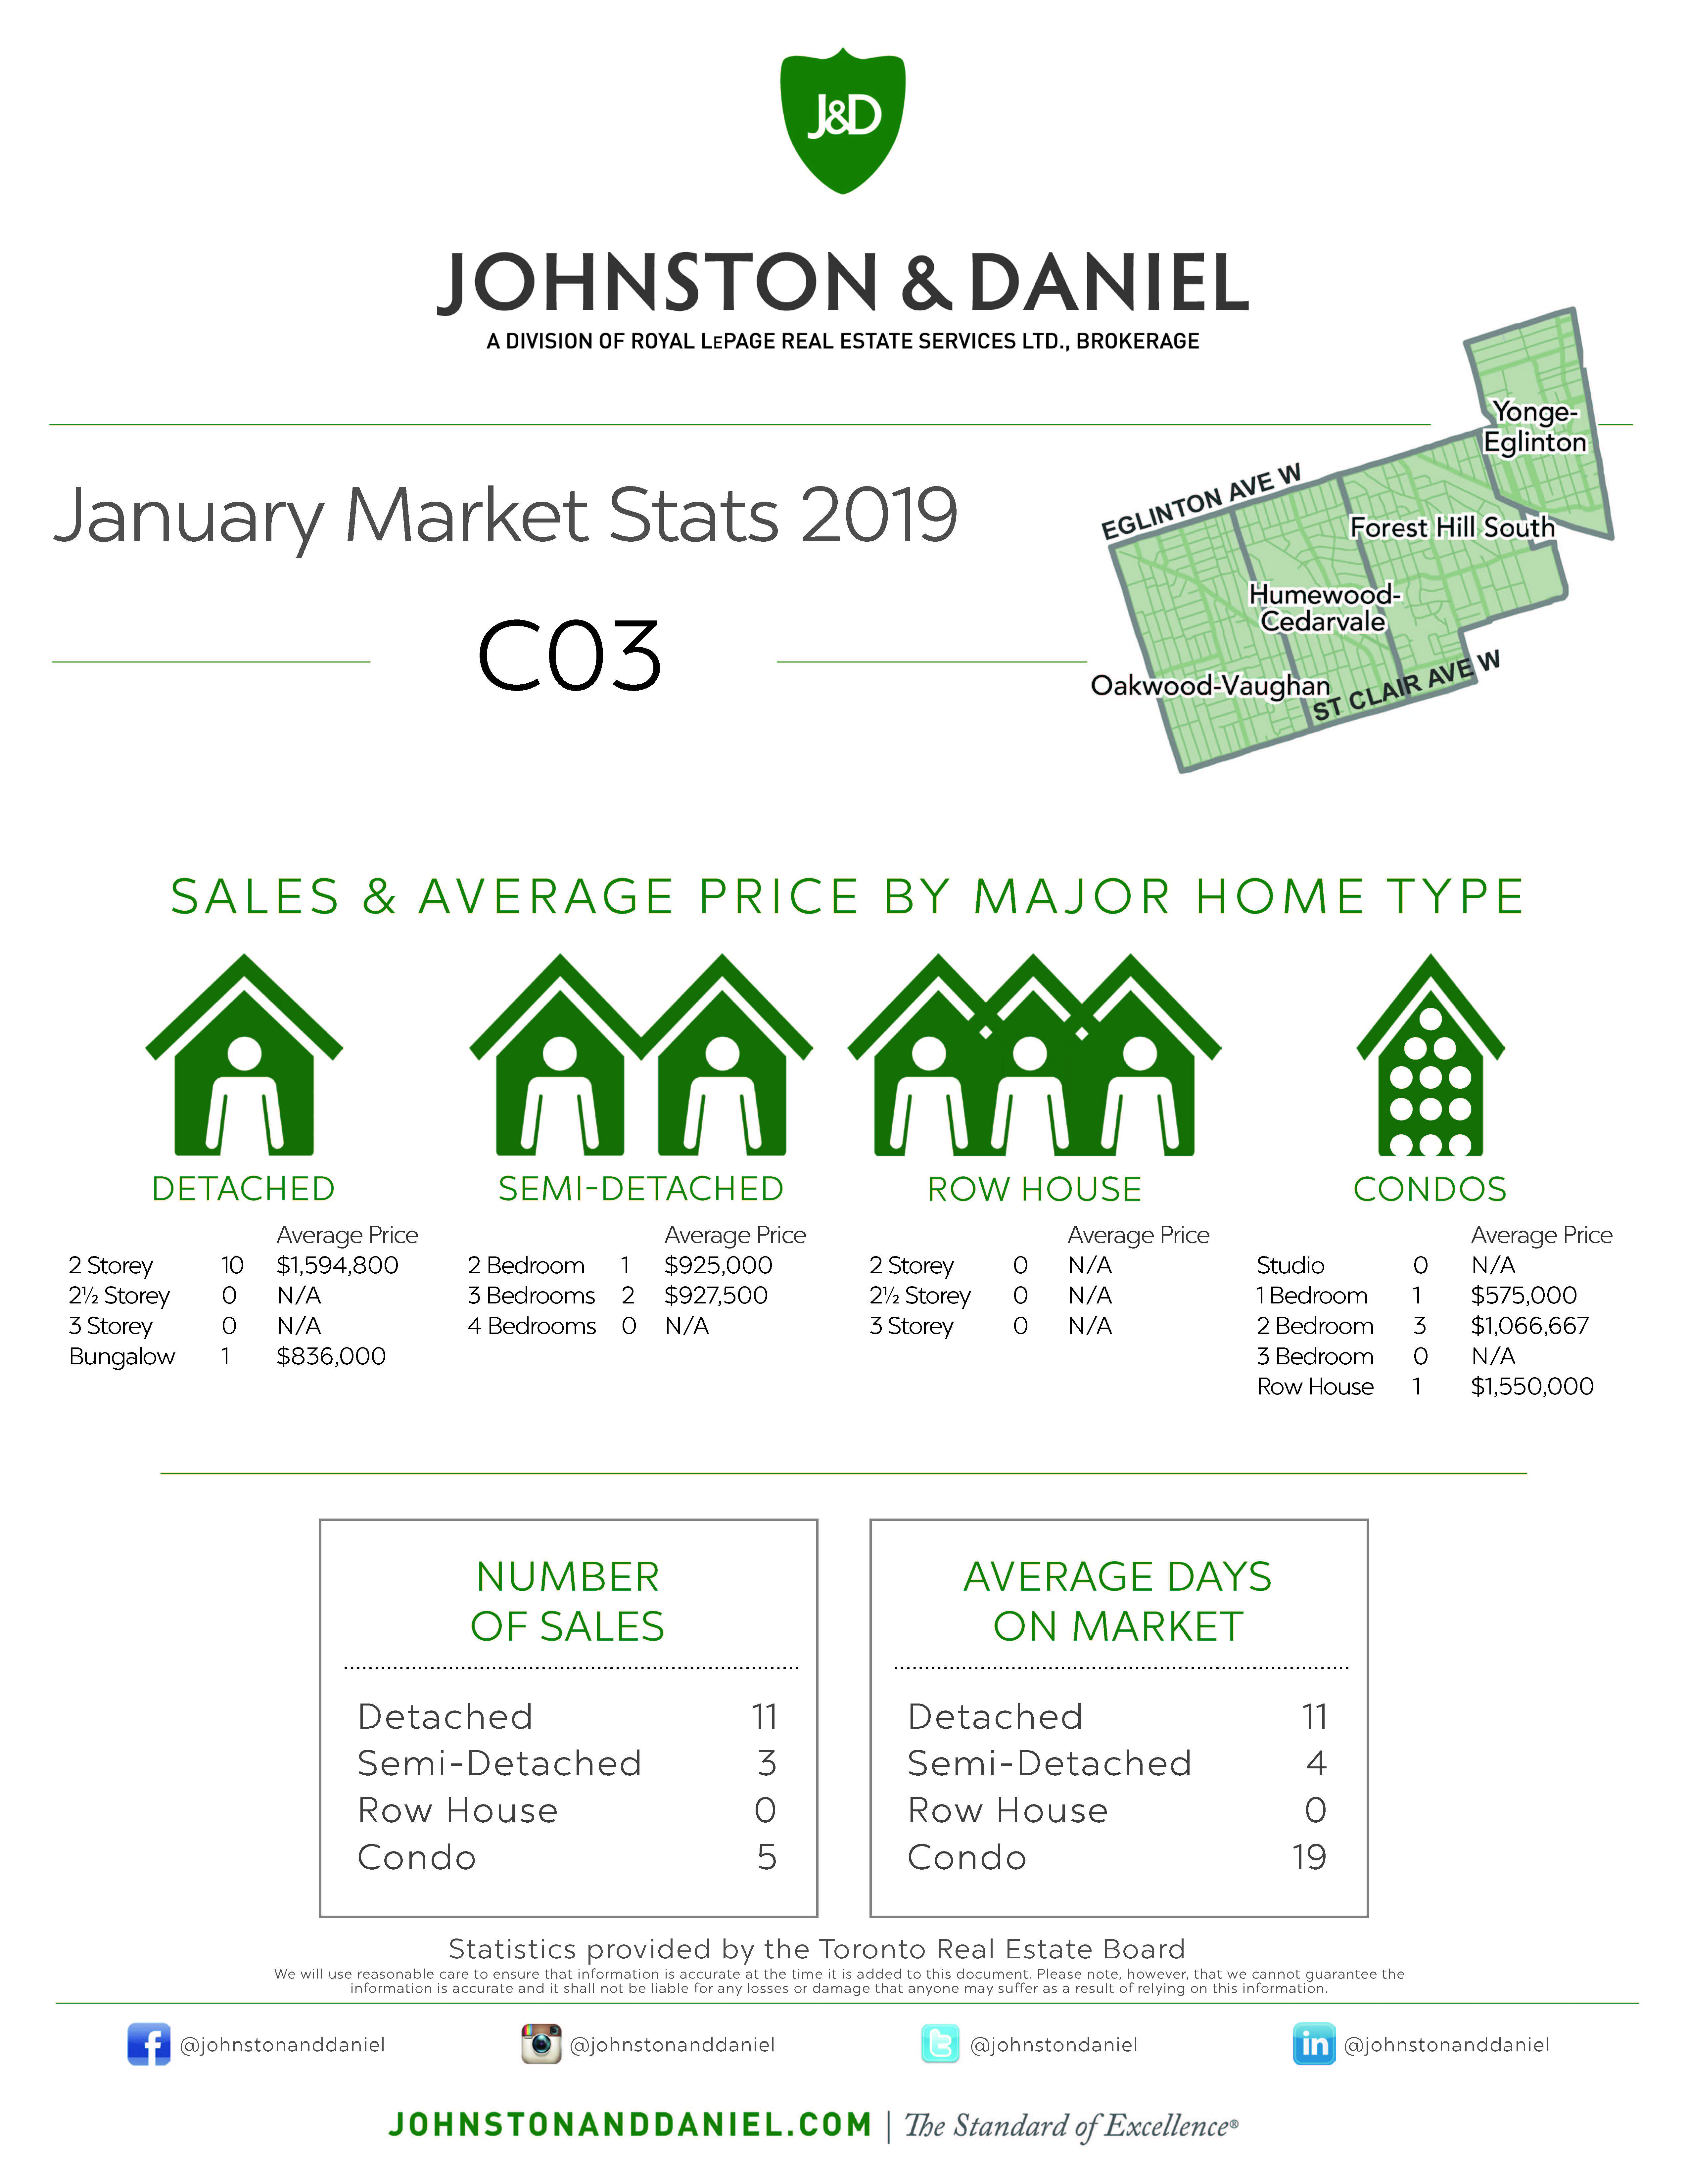 Toronto Real Estate Sales Statistics January 2019 for Area C03